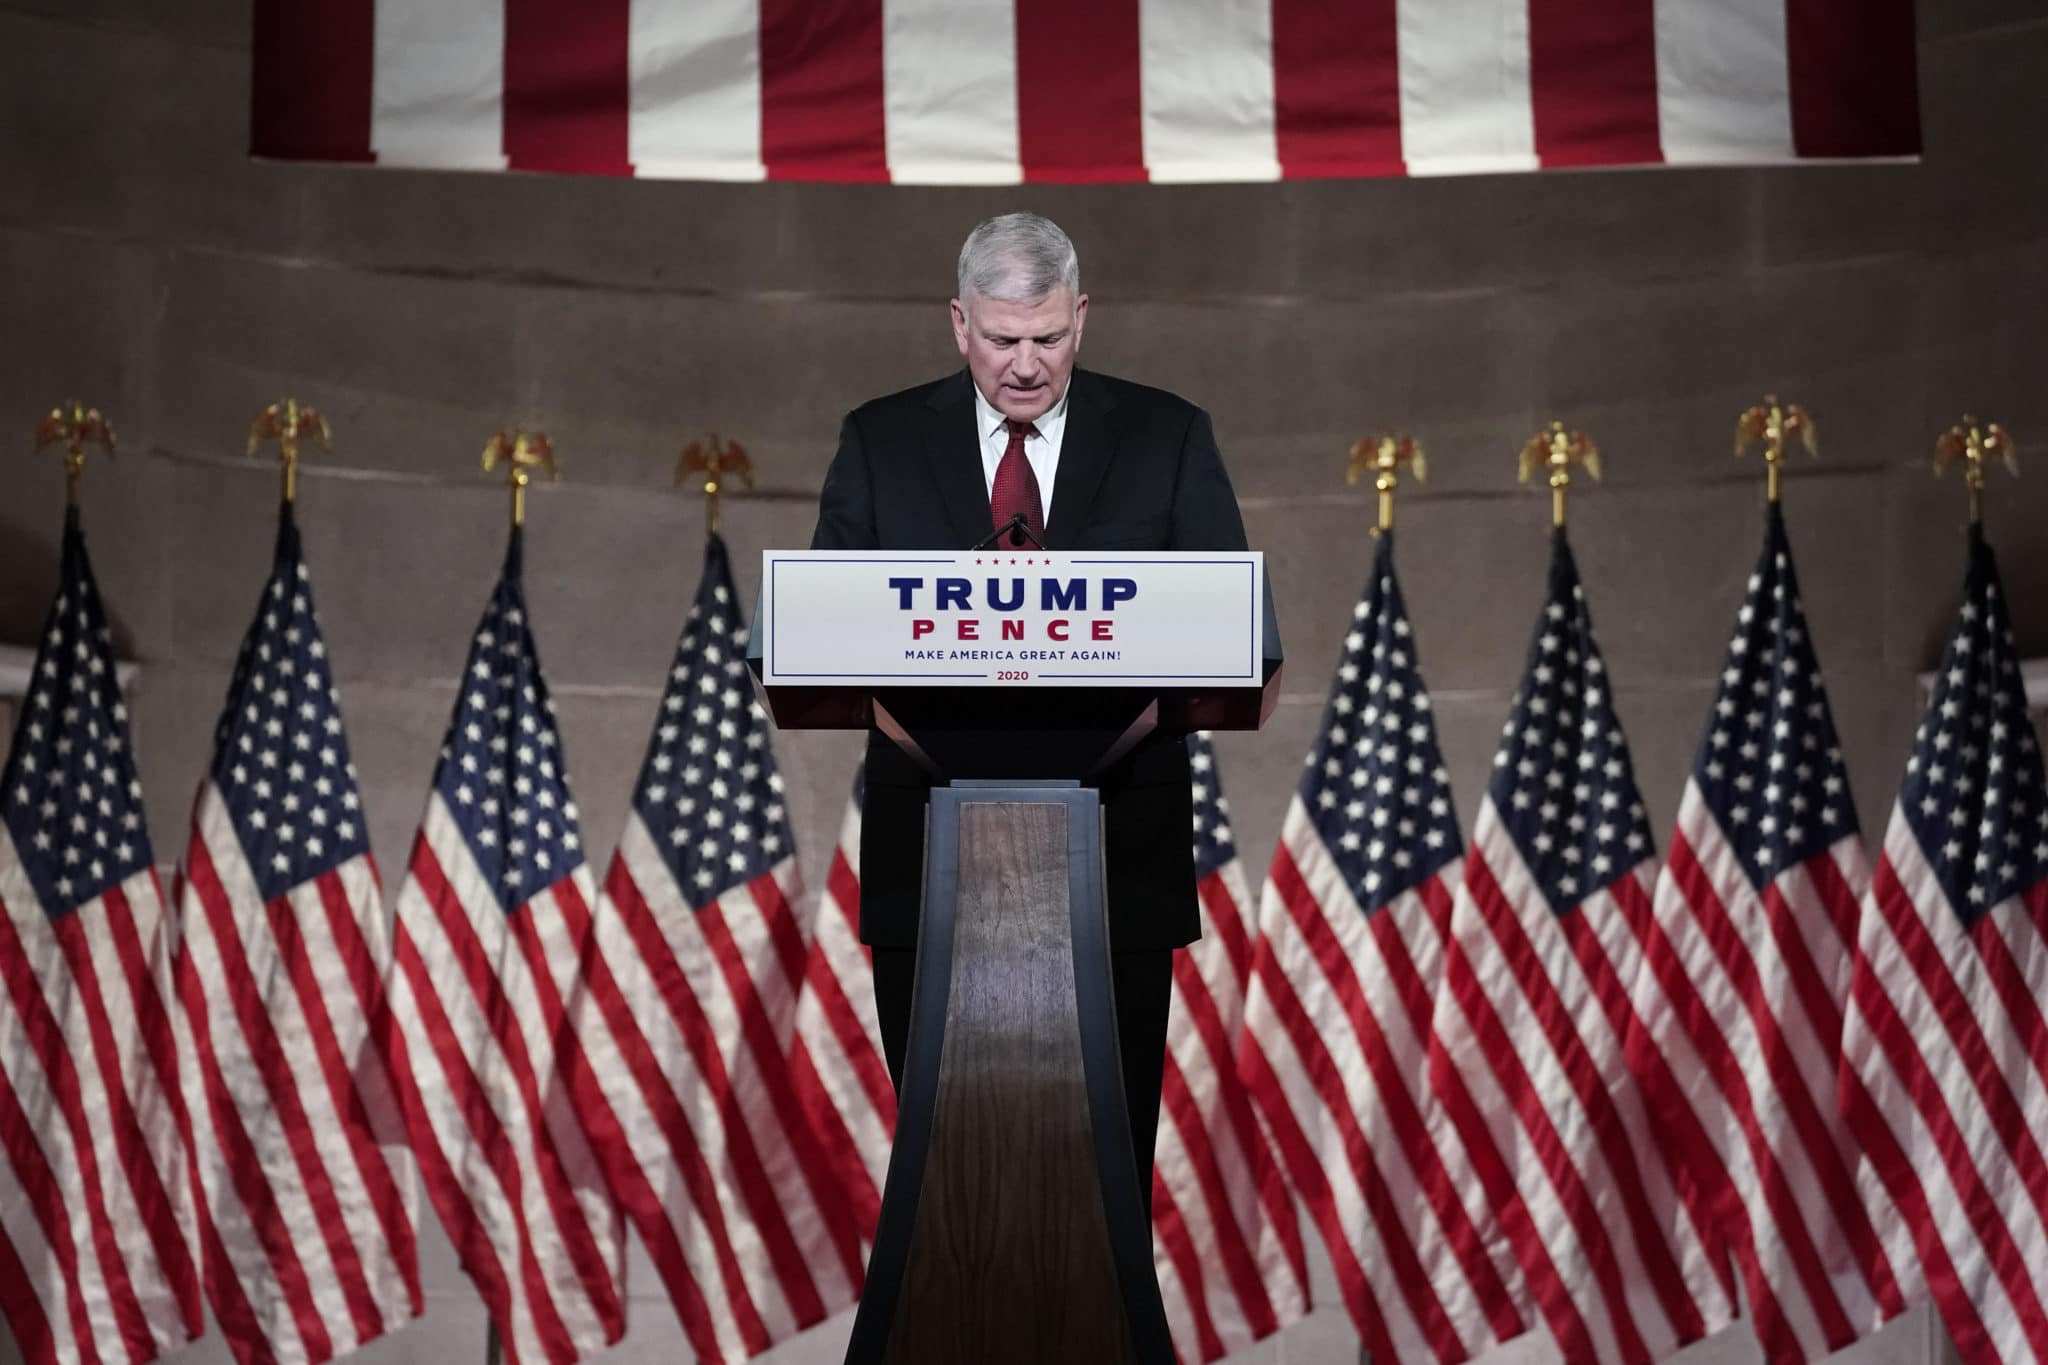 Trump fanatic Franklin Graham attempted to defend Margaret Court